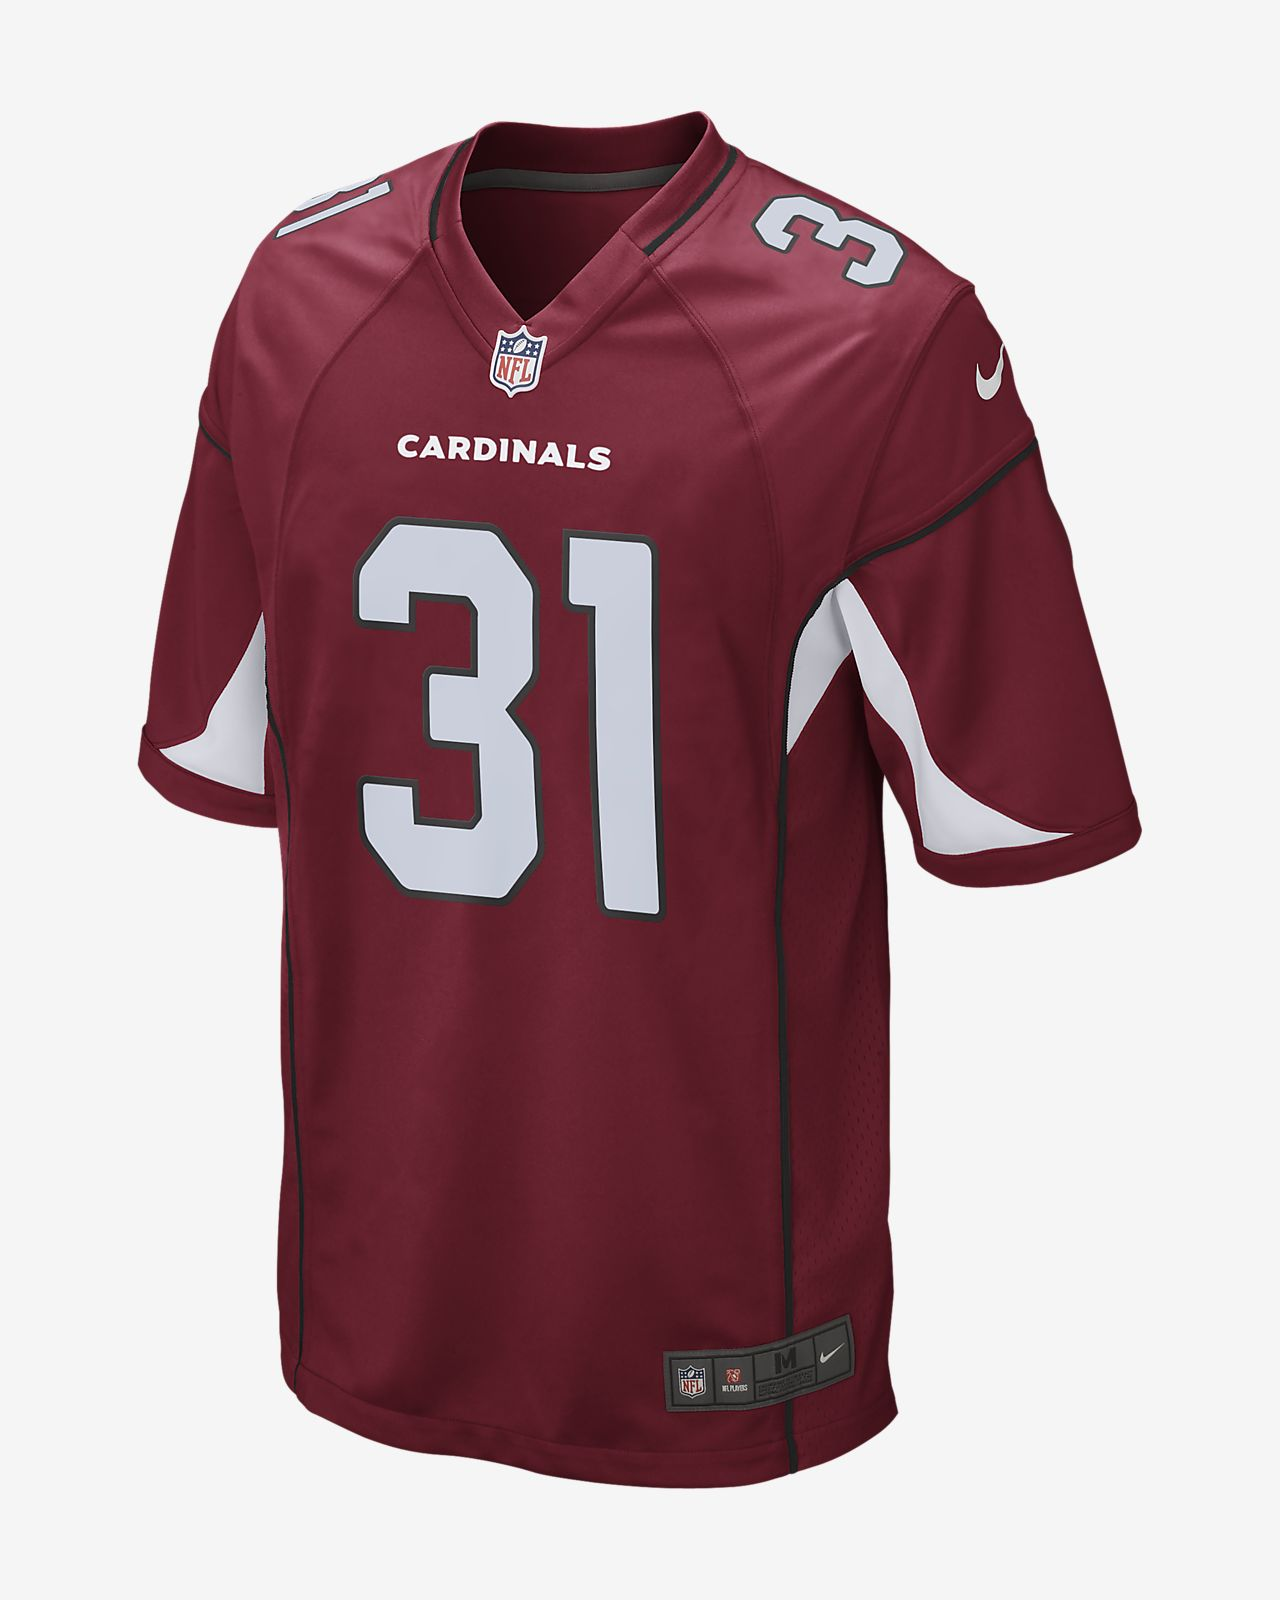 NFL Arizona Cardinals (David Johnson) Men's American Football Game Jersey